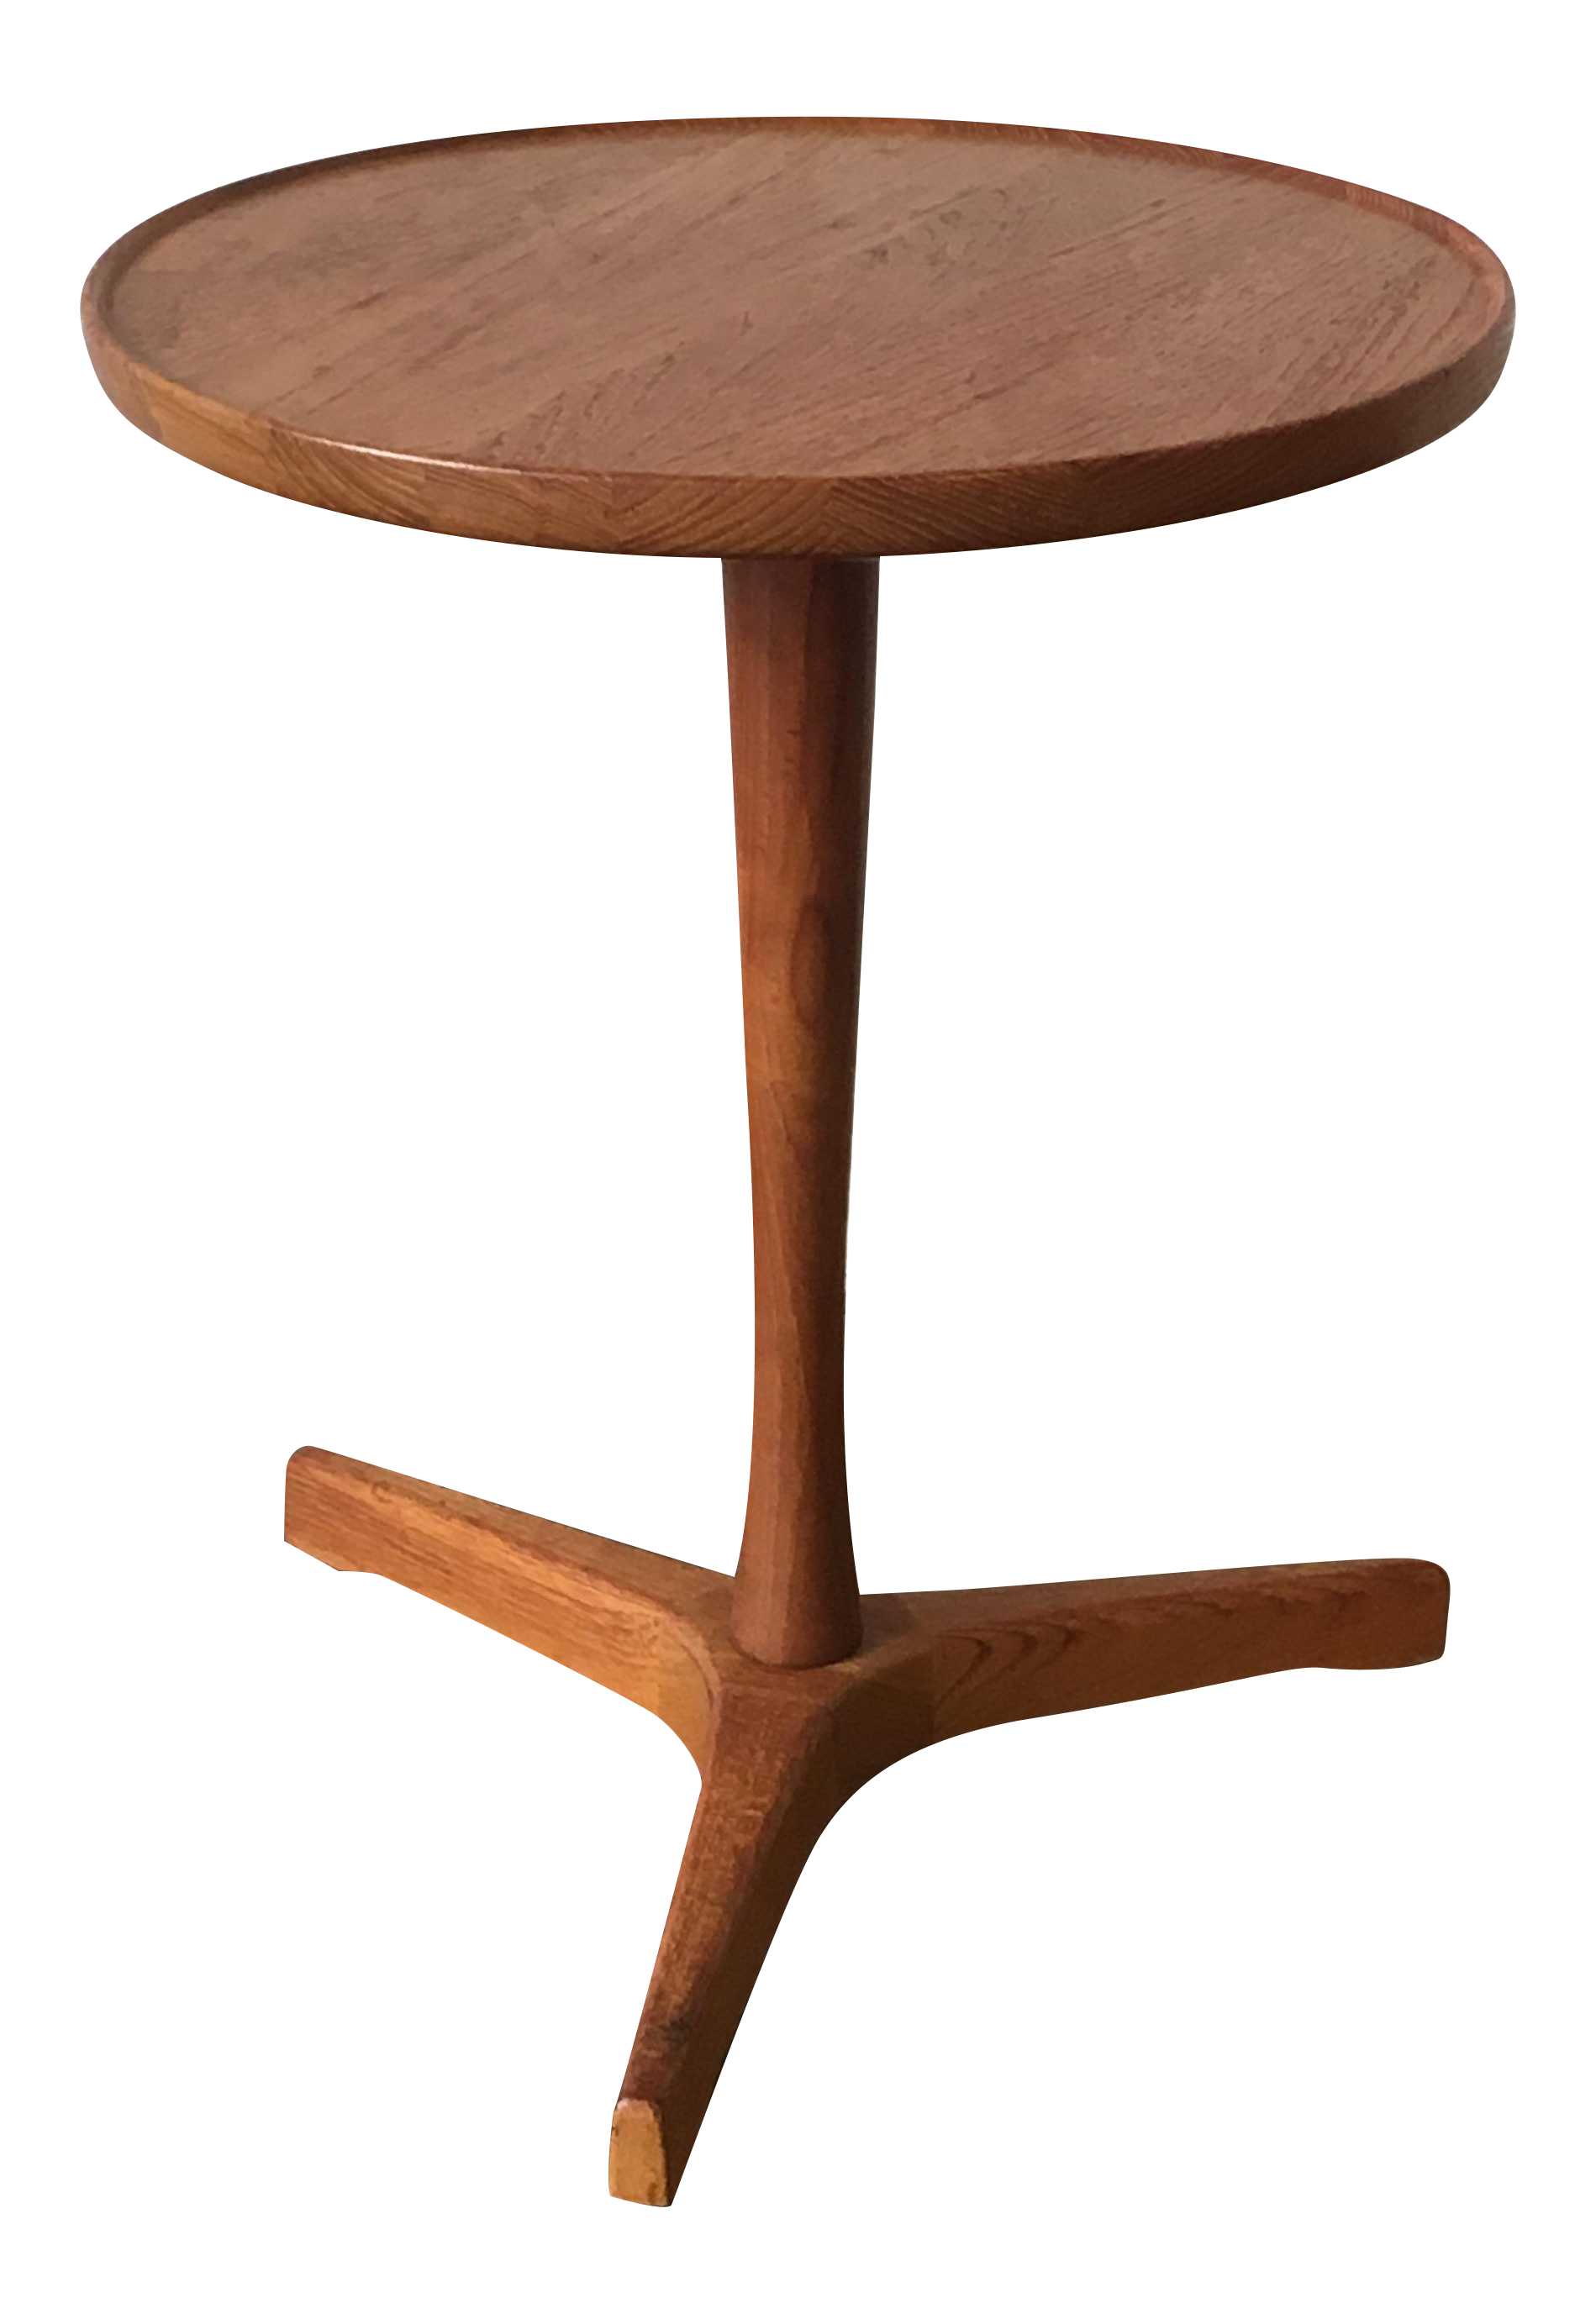 Artek denmark vintage small teak side table chairish geotapseo Image collections